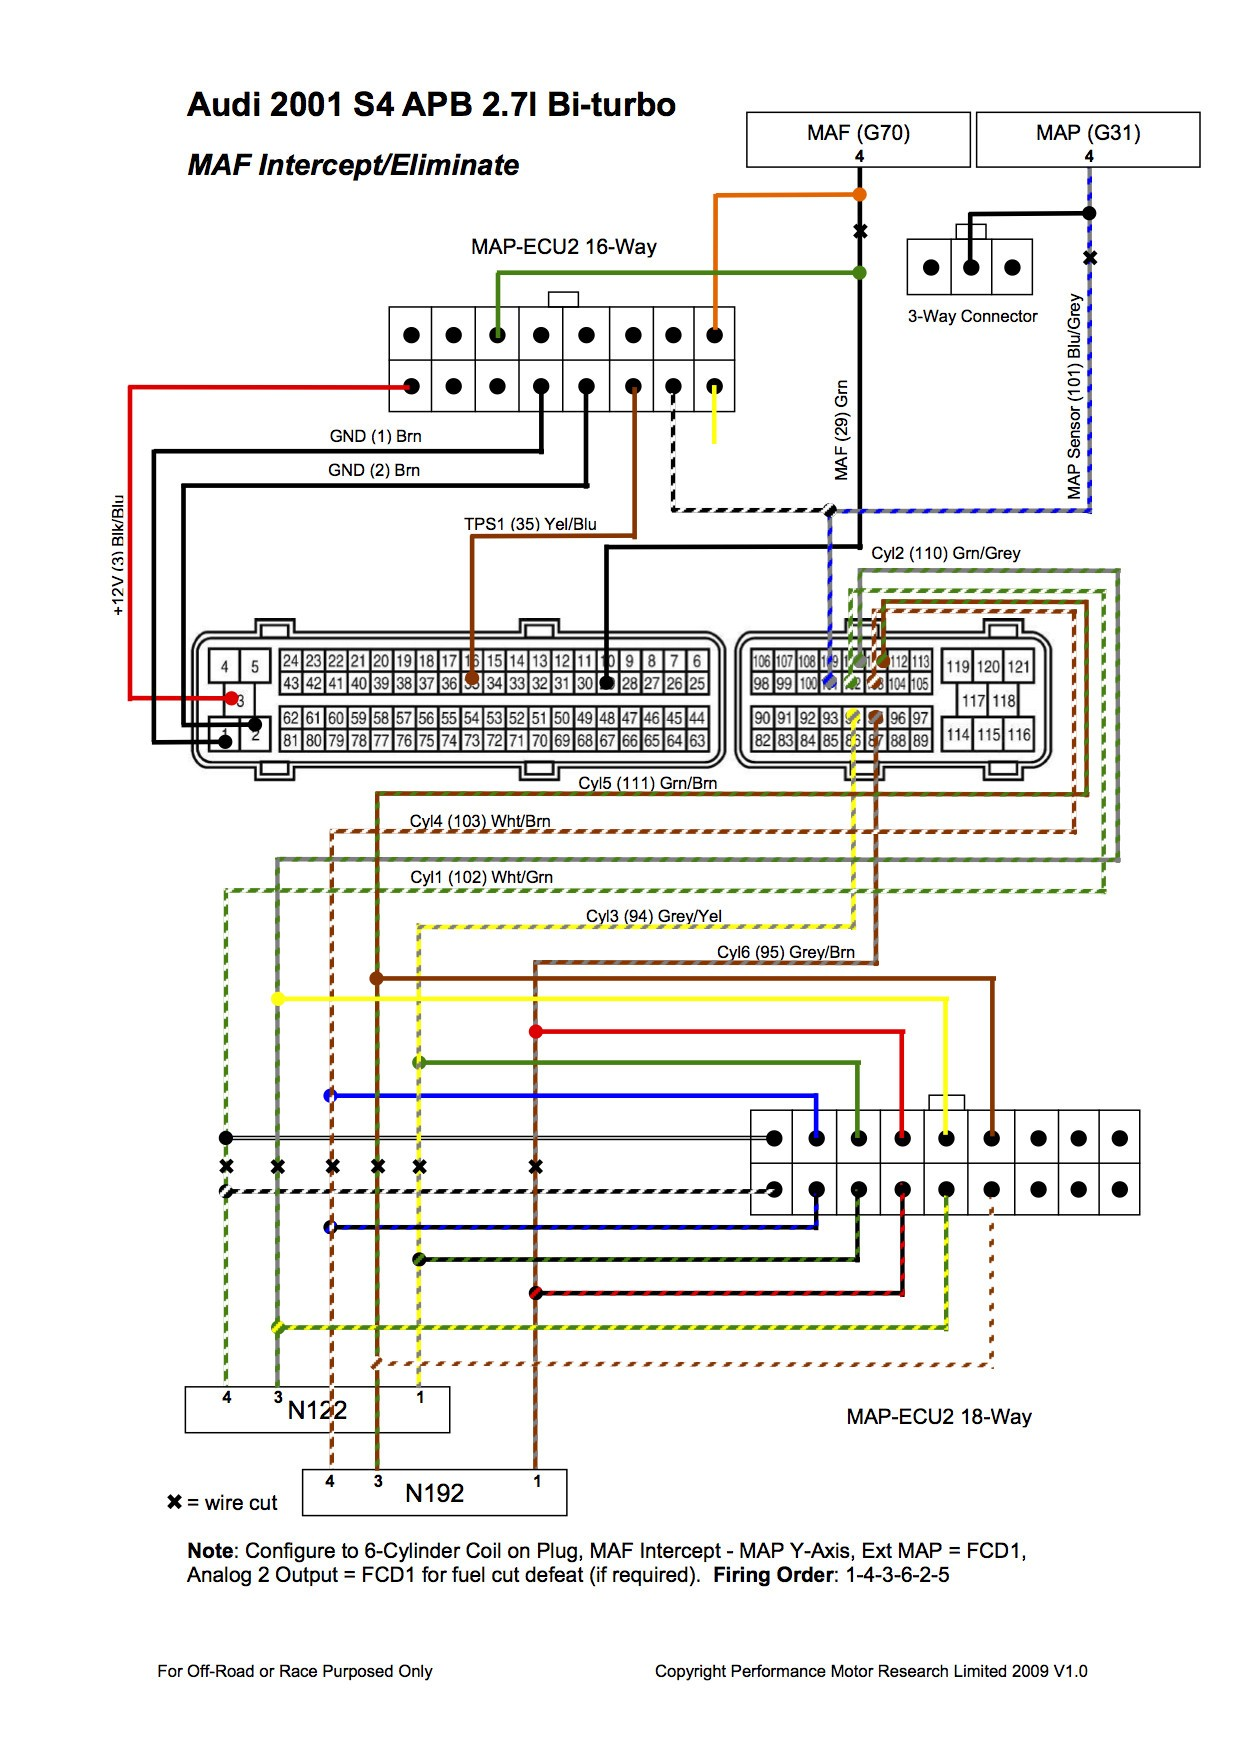 ... ecu circuit diagram enthusiast wiring diagrams u2022 rh rasalibre co  ecu circuit diagram pdf car ecu